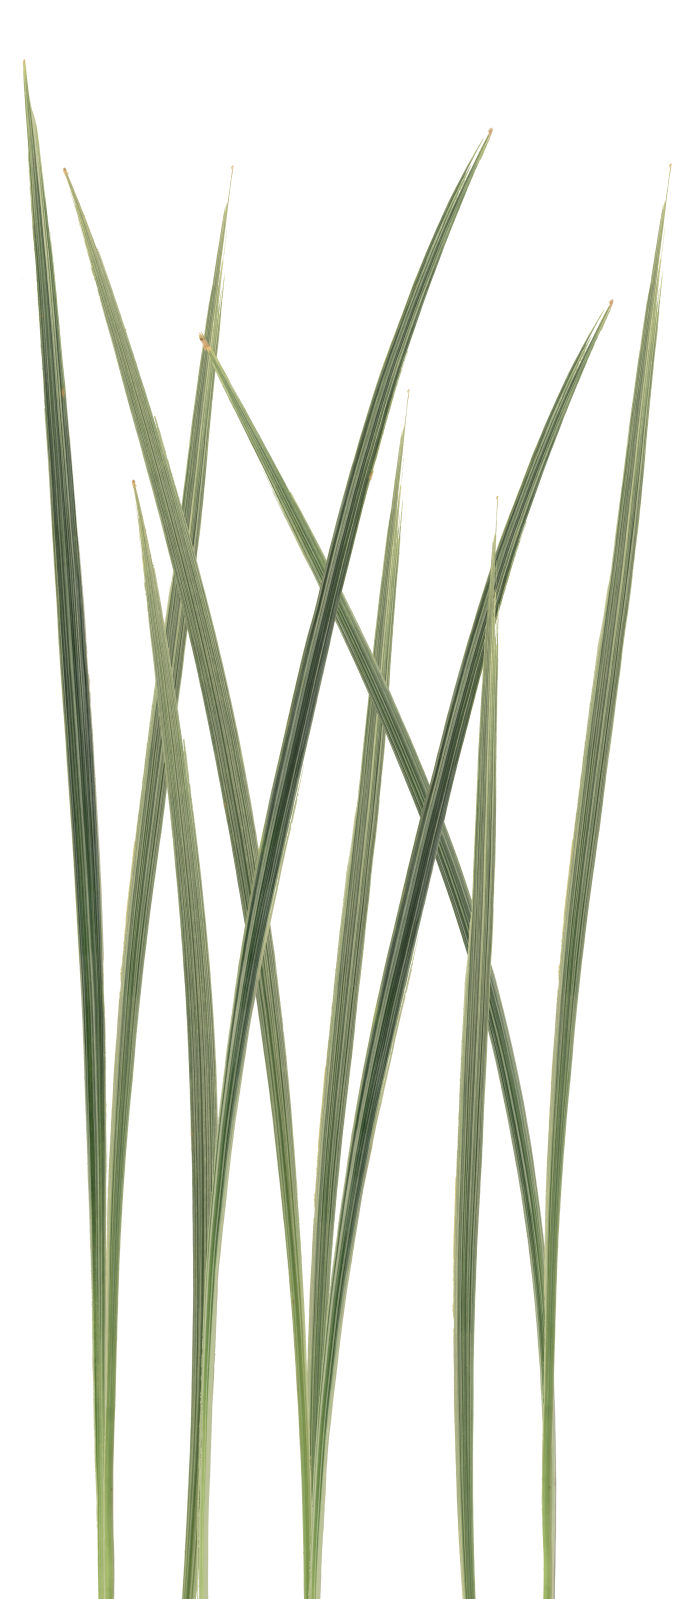 Grass blade texture png. Beautiful wild exellent imported